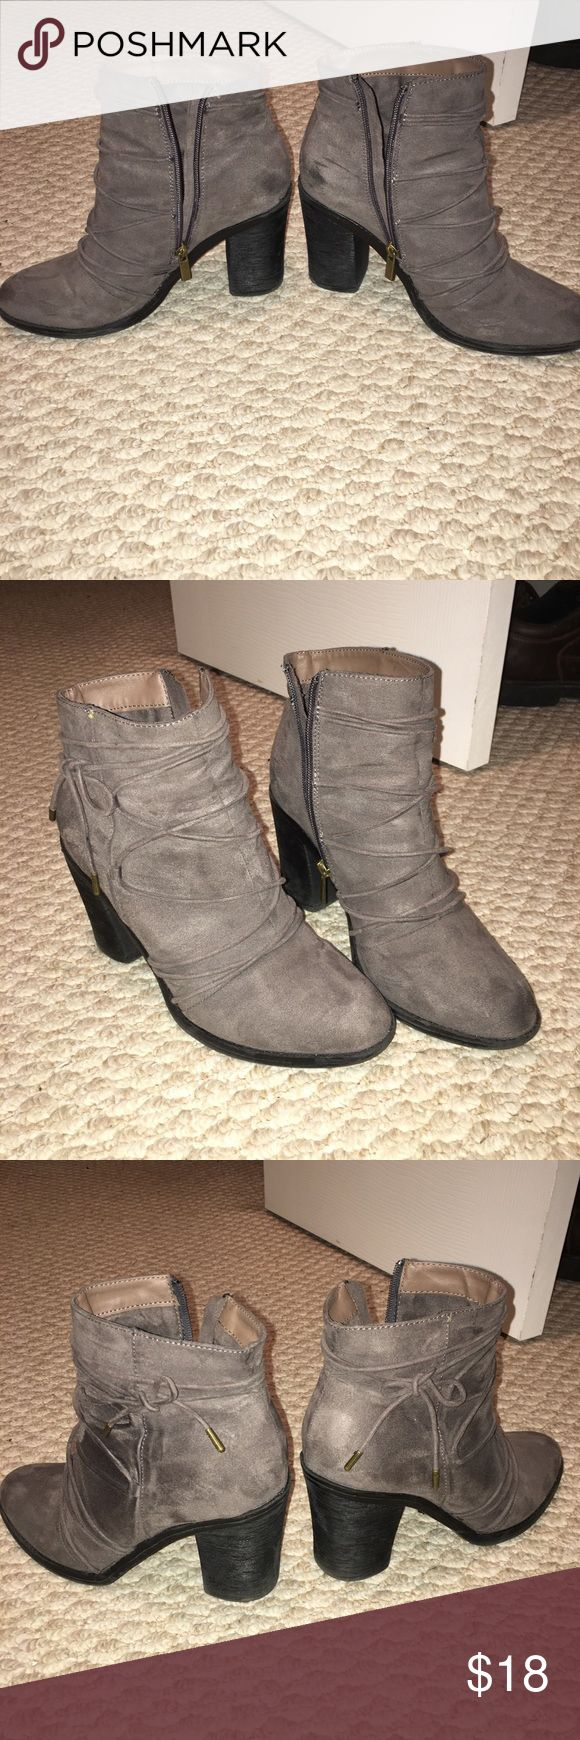 Gray boots CUTE pair of gray boots, sz 9. Bought last year from an online boutique (Jane 💕), worm maybe twice? No wear marks, excellent shape. I've found ANOTHER pair of gray boots that I love lol, so these gotta go. Shoes Ankle Boots & Booties